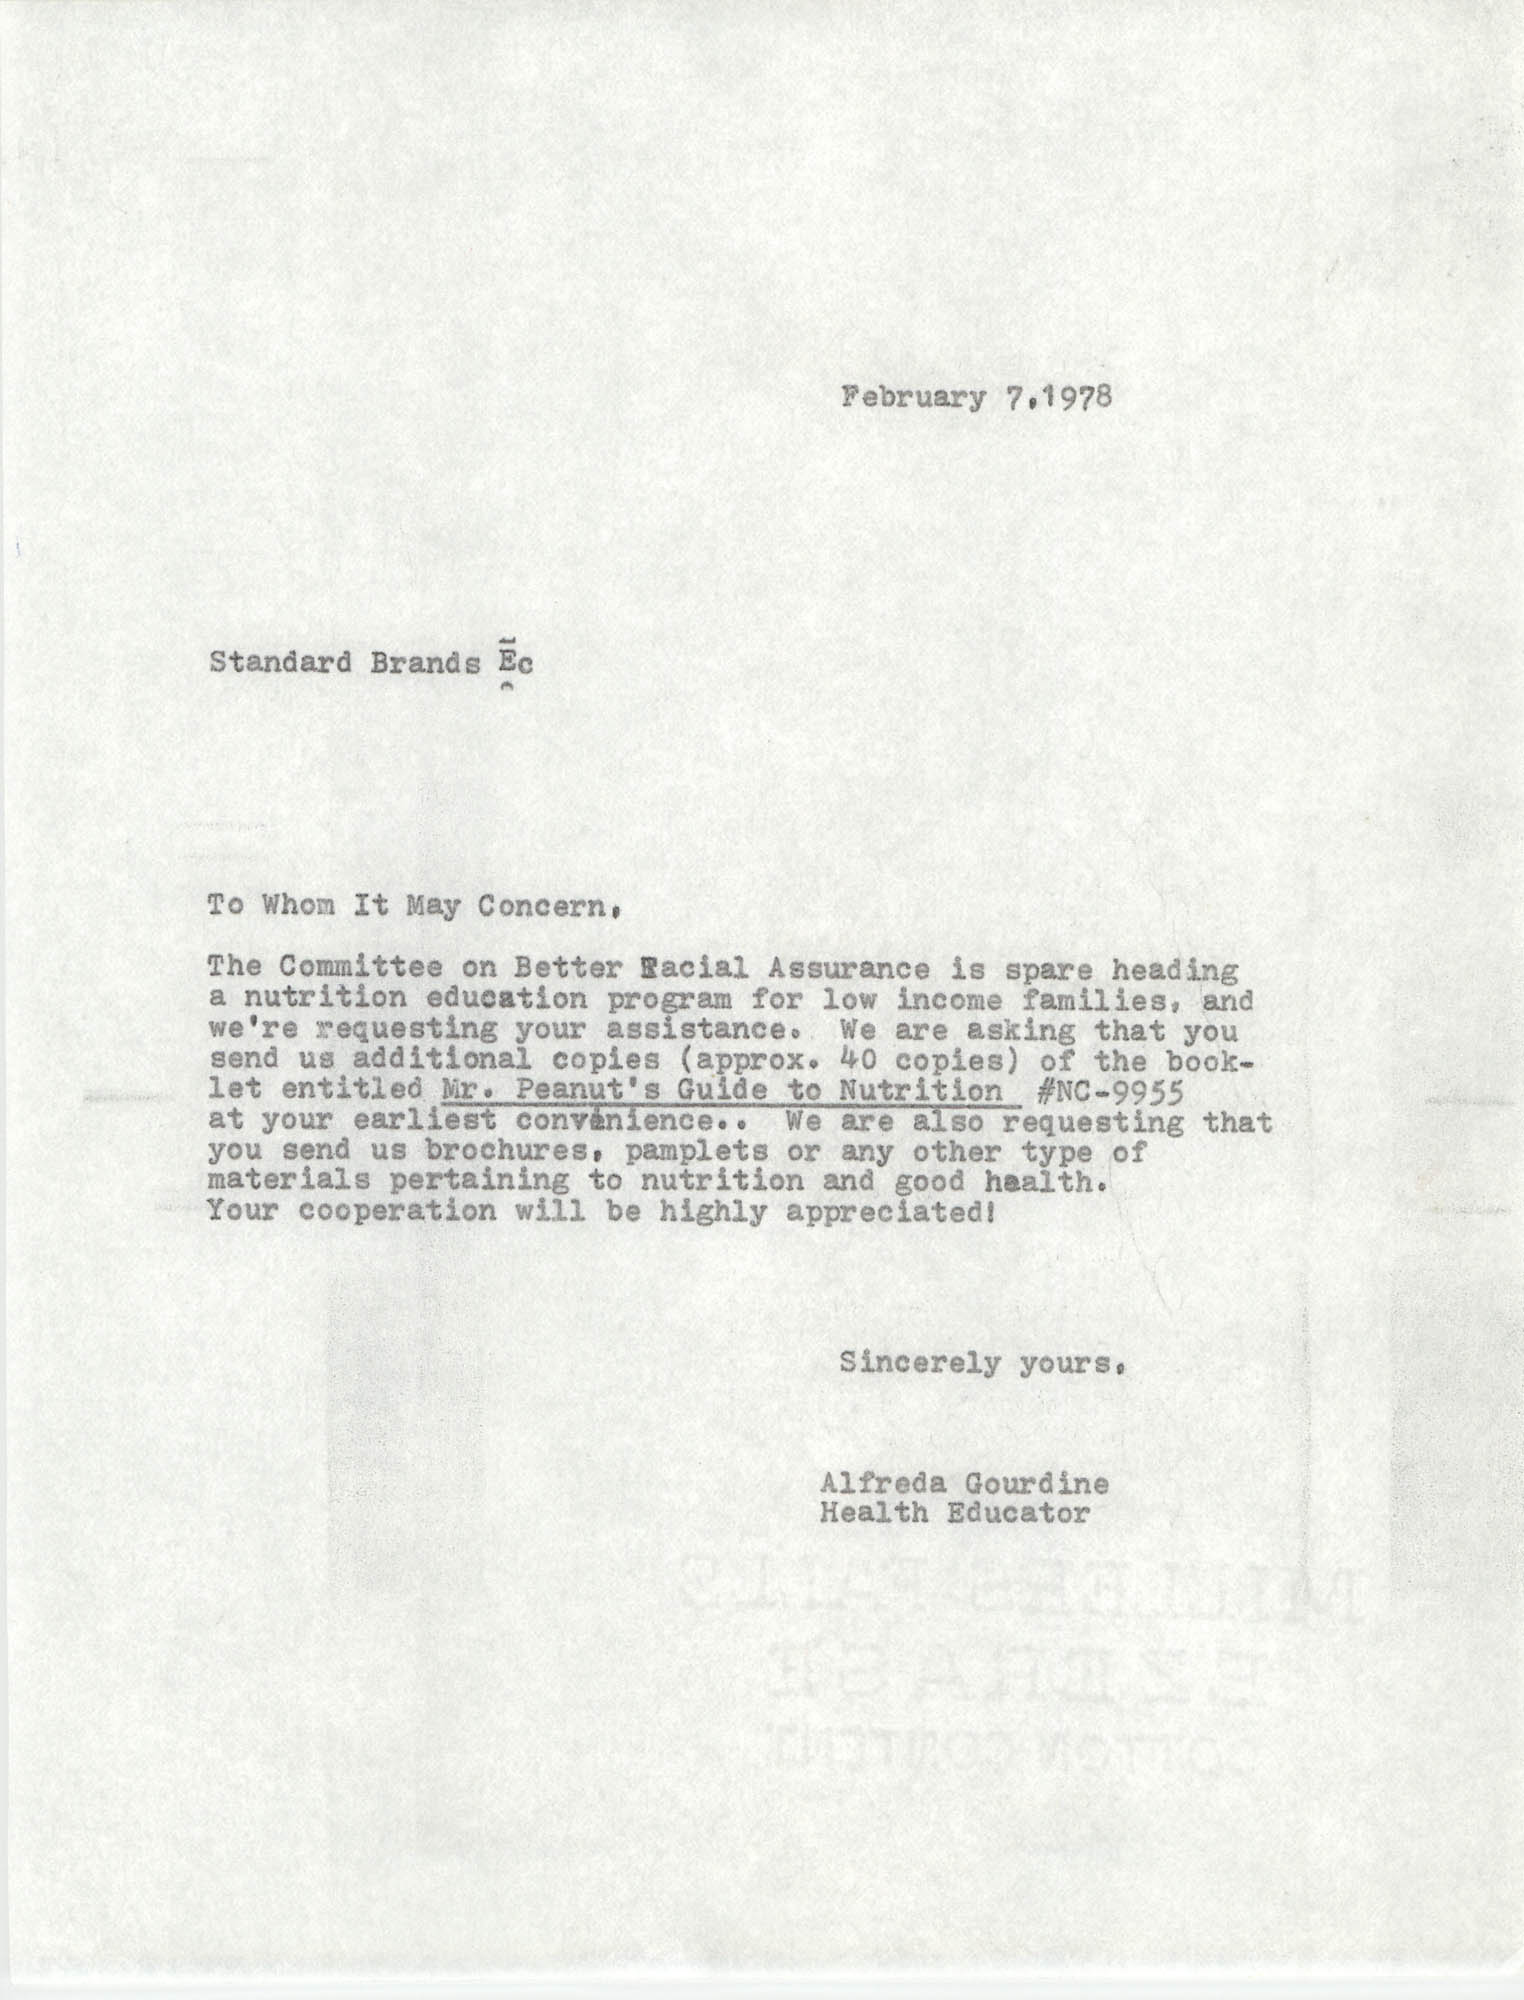 Letter from Alfreda Gourdine to Standard Brands, February 7, 1978